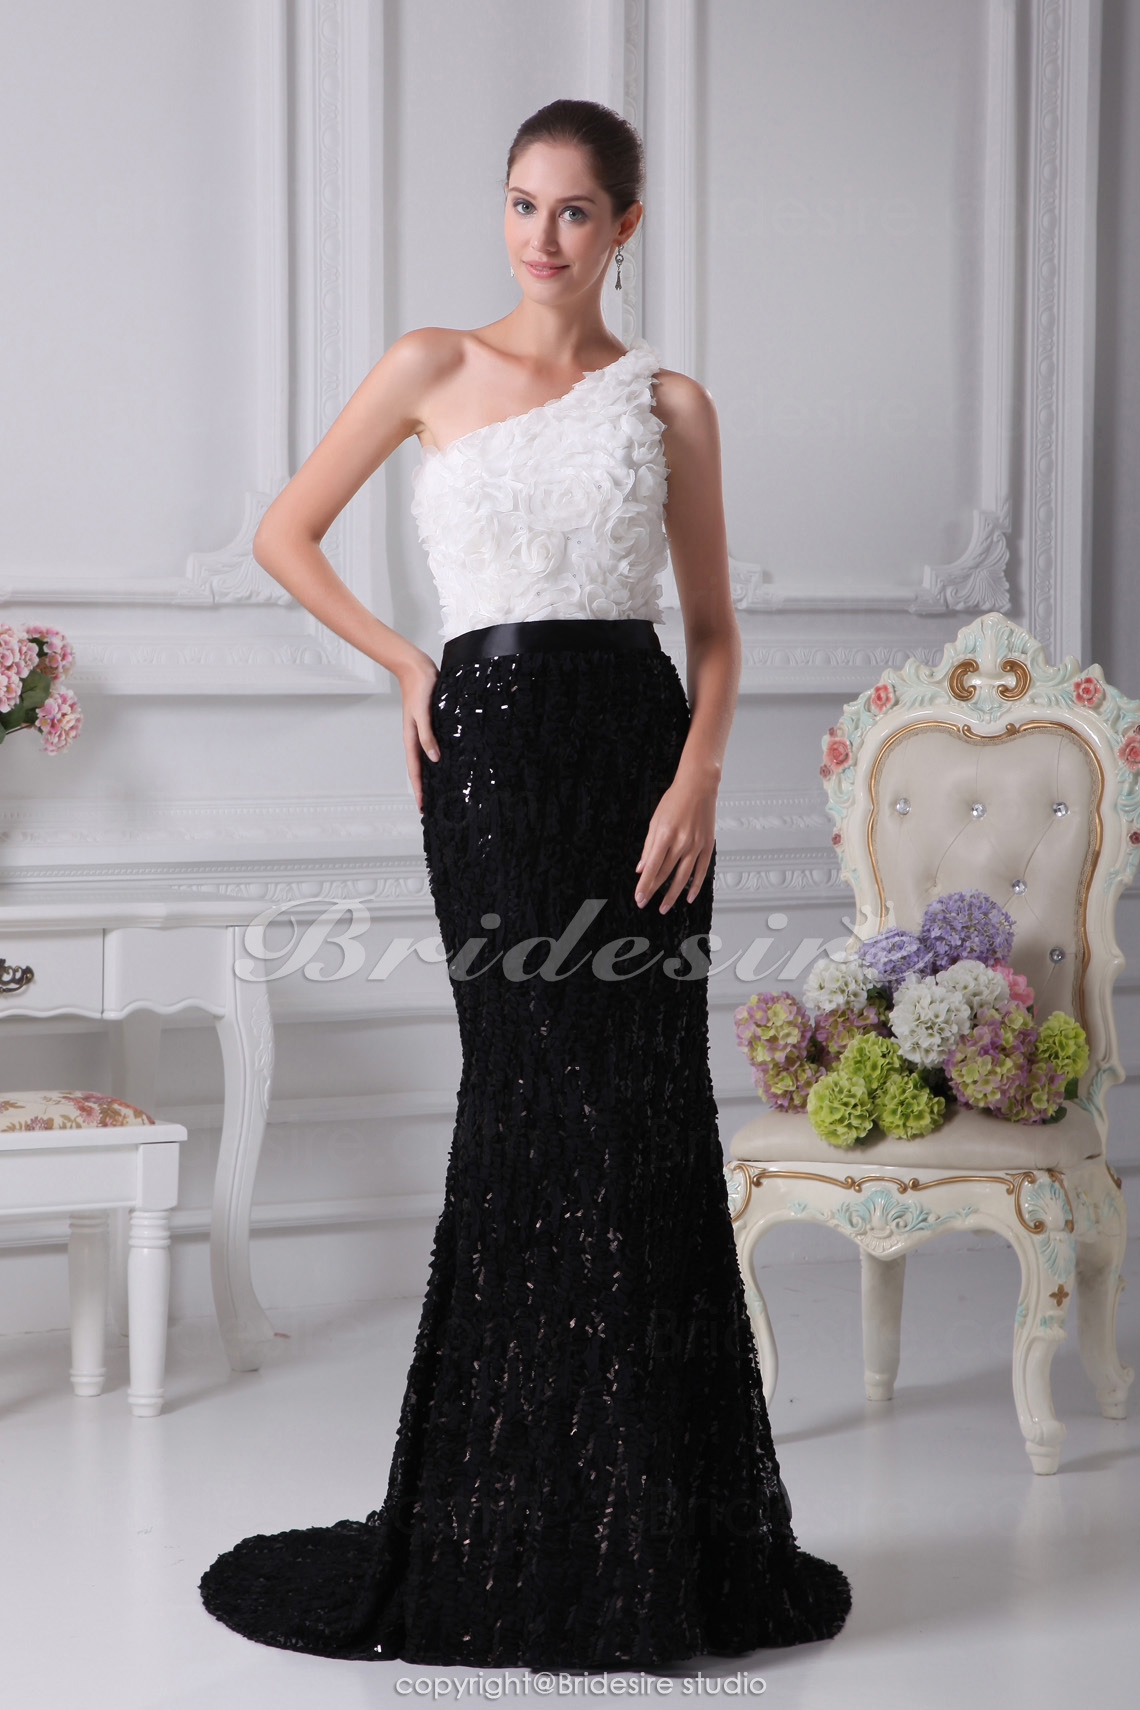 Trumpet/Mermaid One Shoulder Court Train Sleeveless Sequined Chiffon Dress